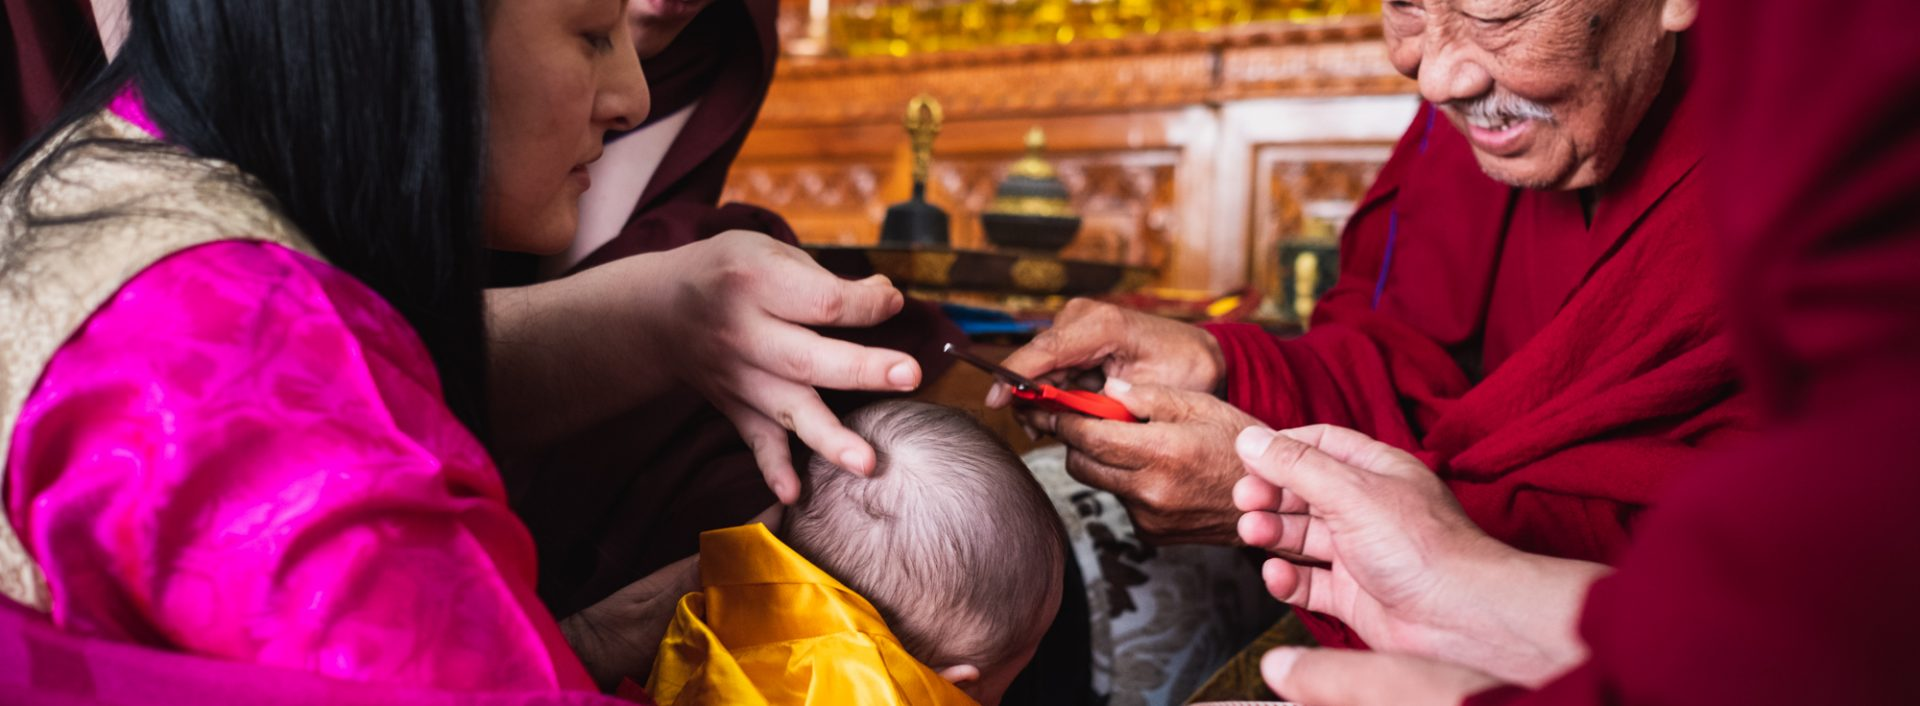 The moment when His Eminence Luding Khenchen Rinpoche, the 75th head of the Ngor tradition of the Sakya school of Tibetan Buddhism, cuts the hair of Thugsey, symbolizing his taking refuge in the Three Jewels: the Buddha, the dharma and the sangha